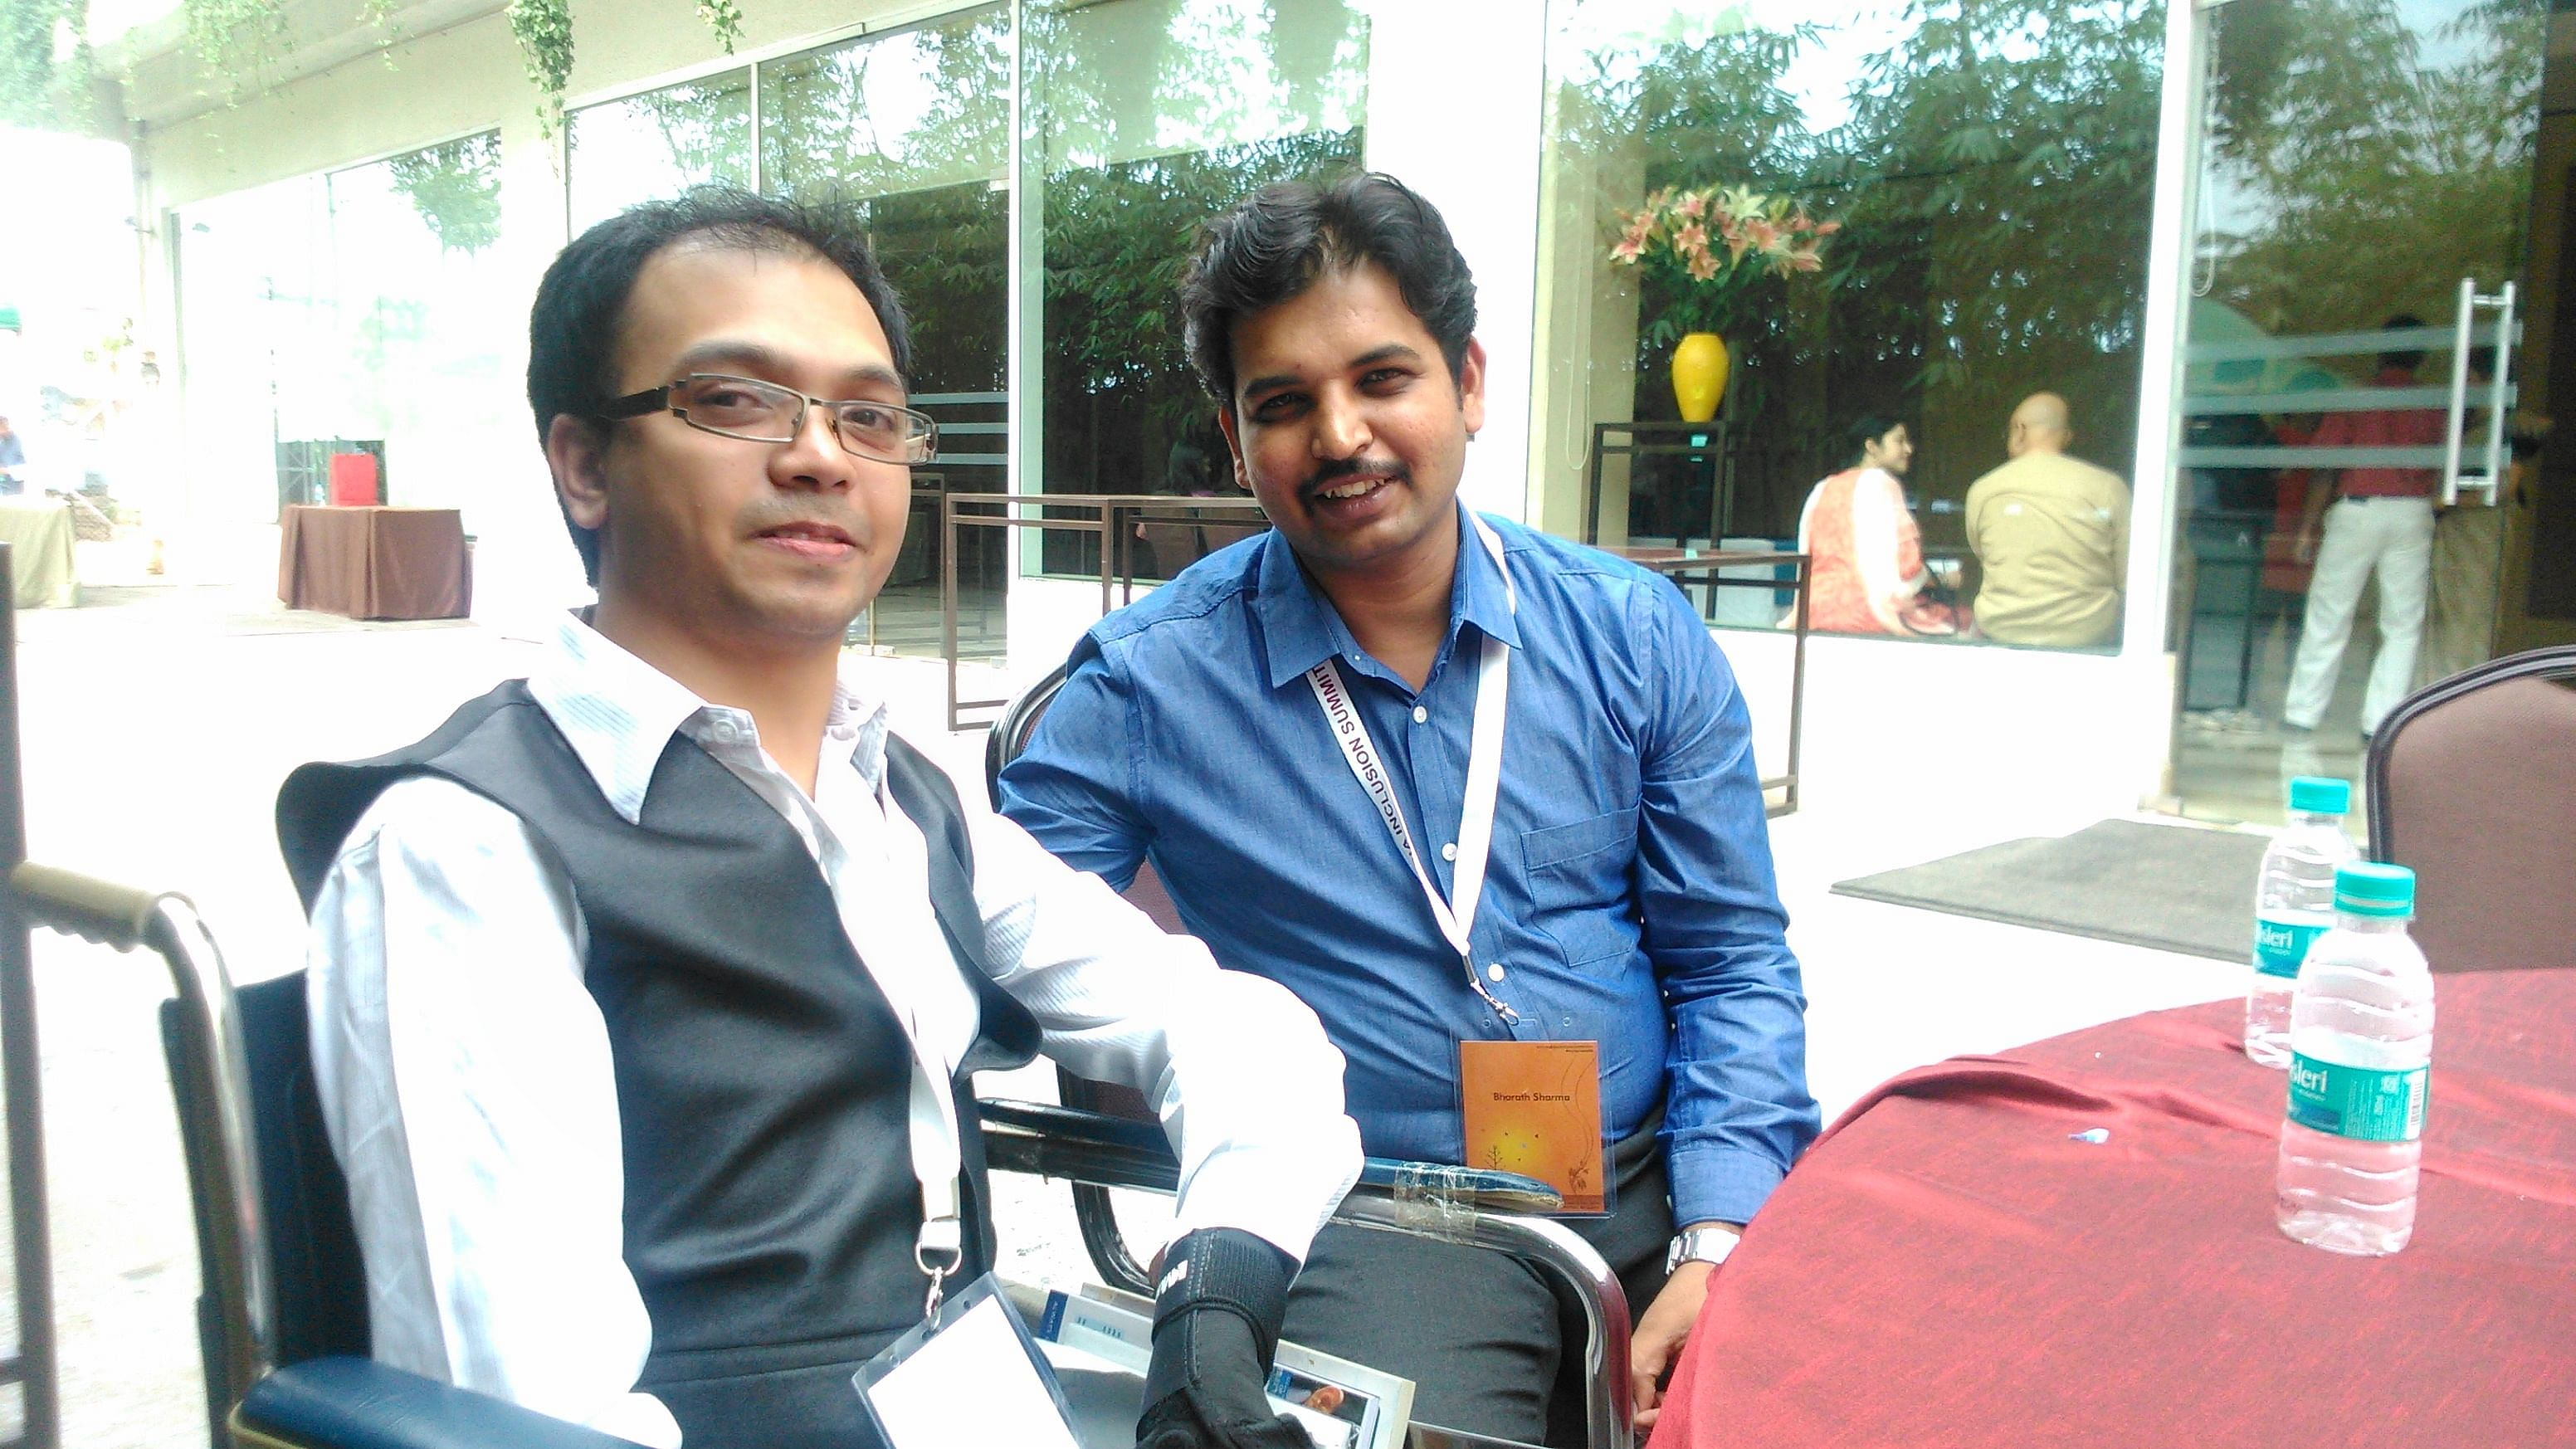 Ashwin (left) with Bharath at India Inclusion Summit, Bangalore.